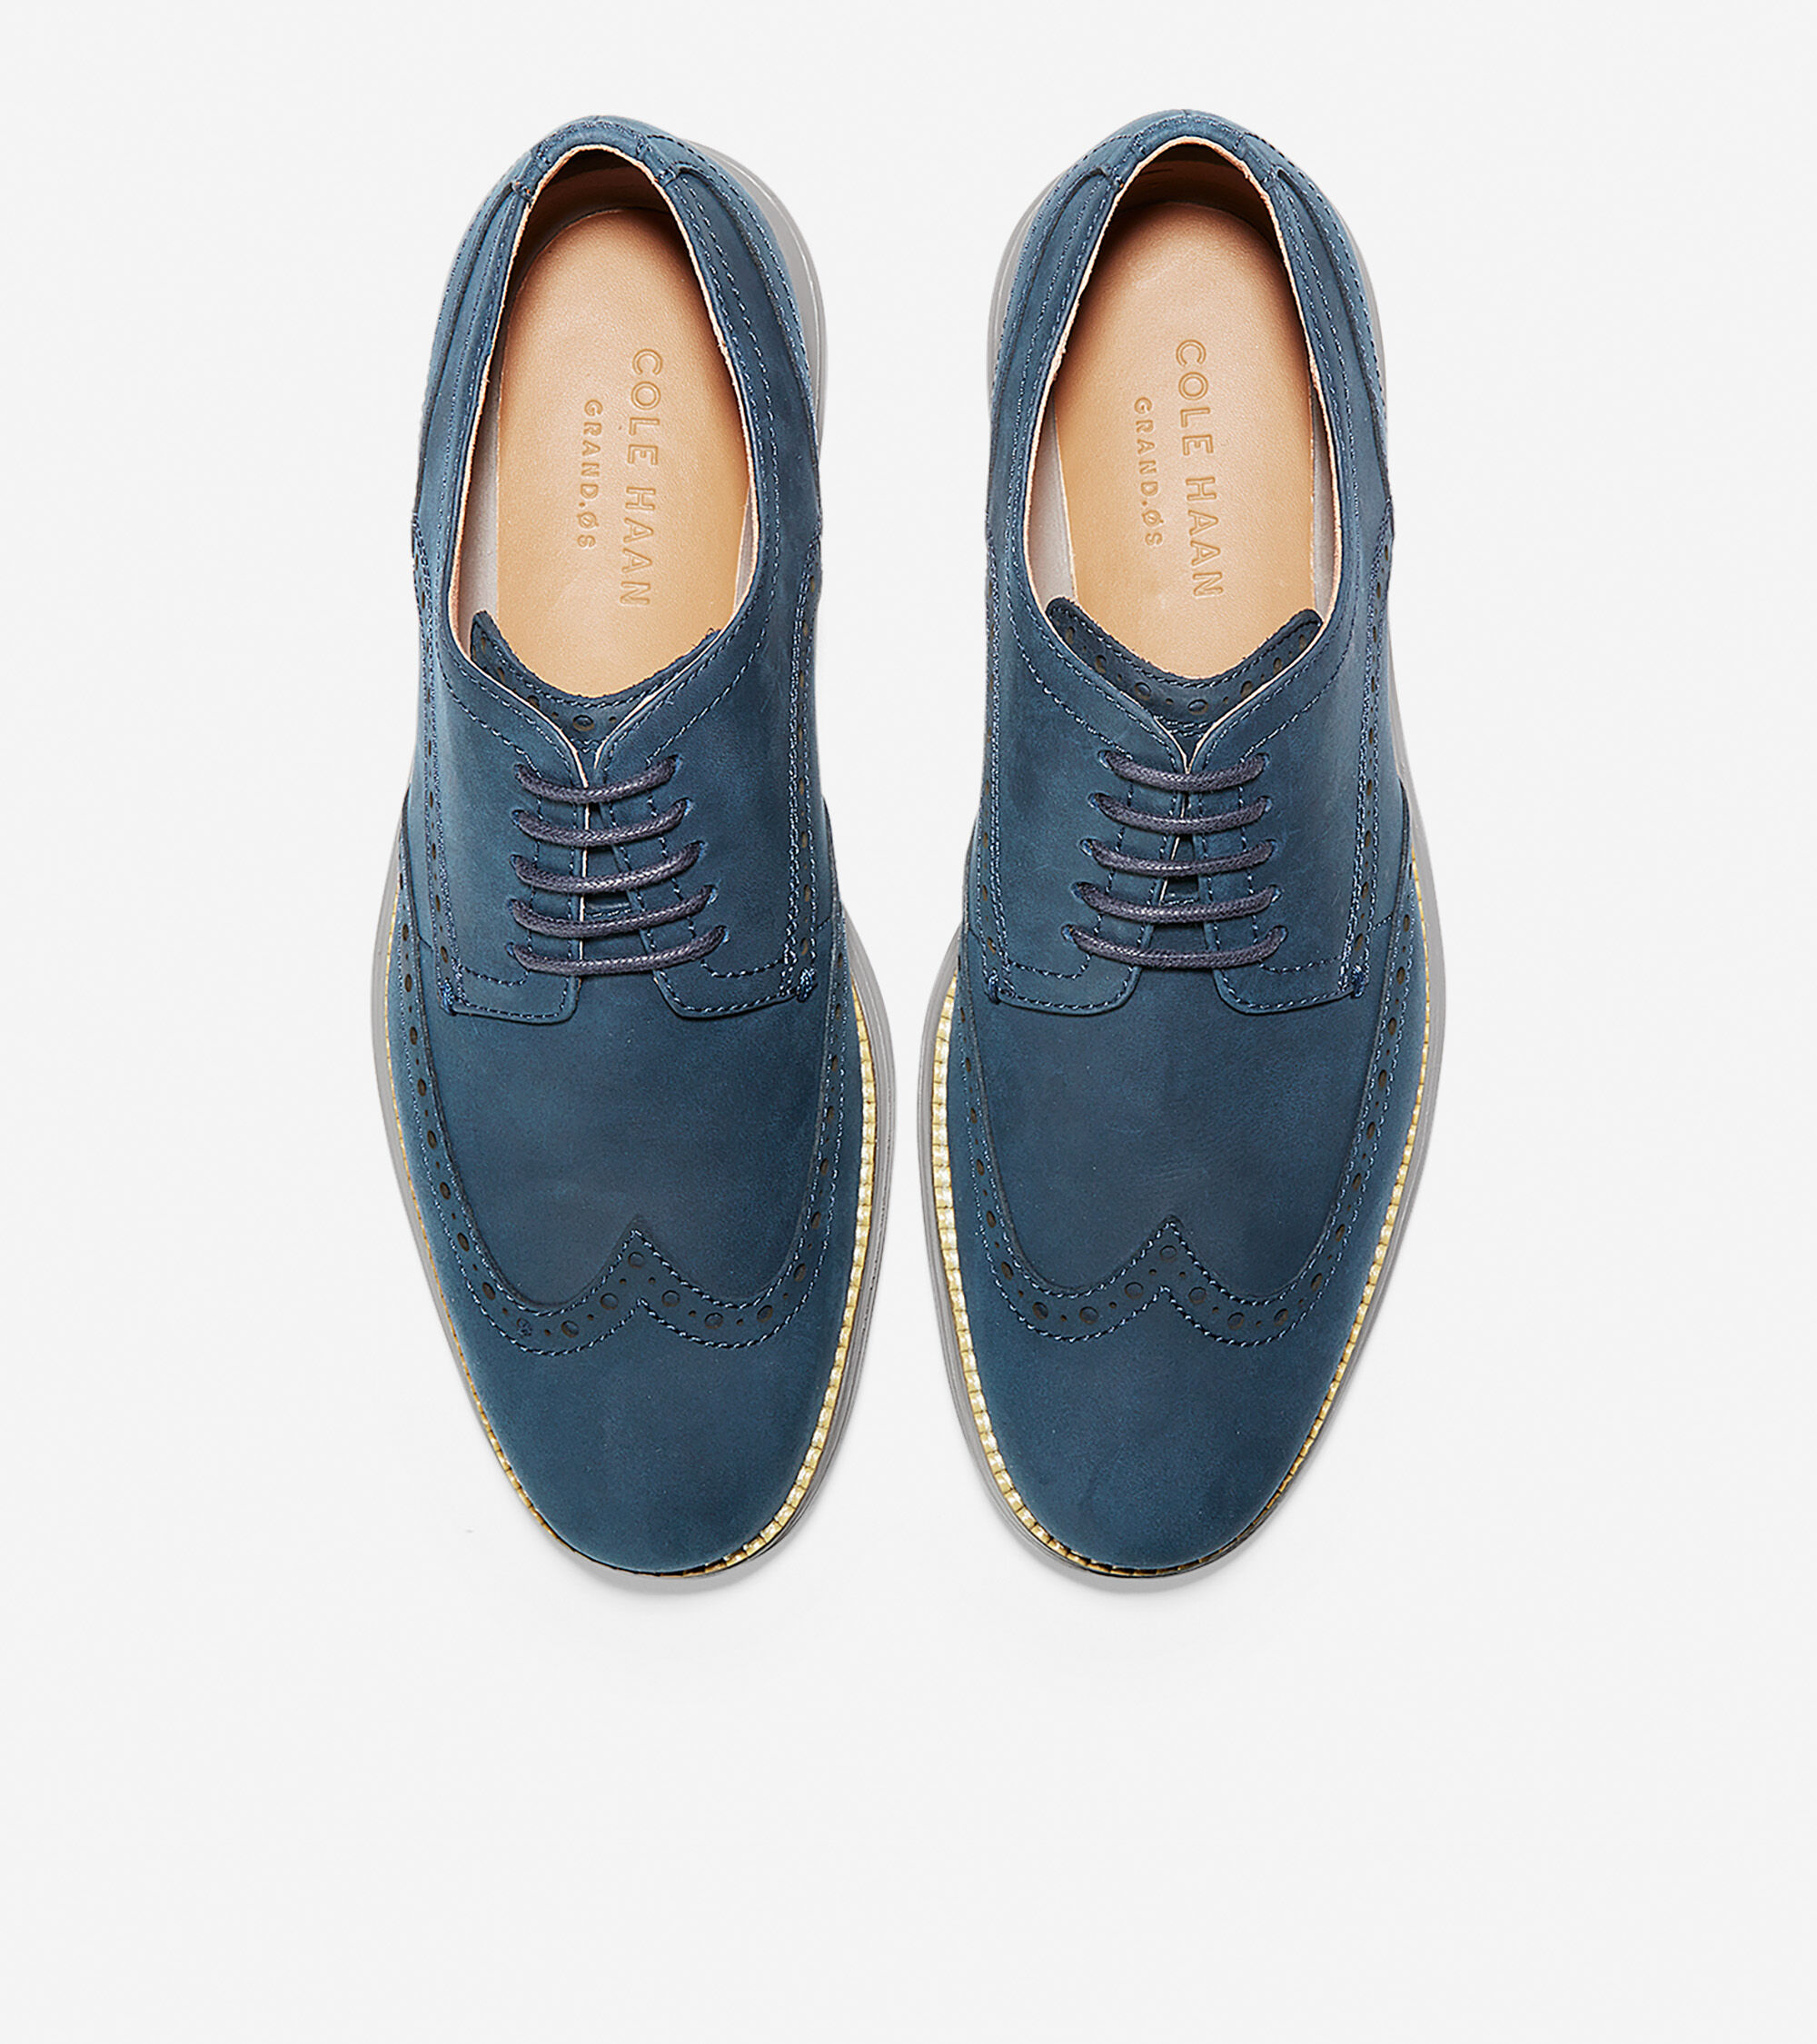 f37ce4fec09c8 Men s OriginalGrand Wingtip Oxfords in Blazer Blue